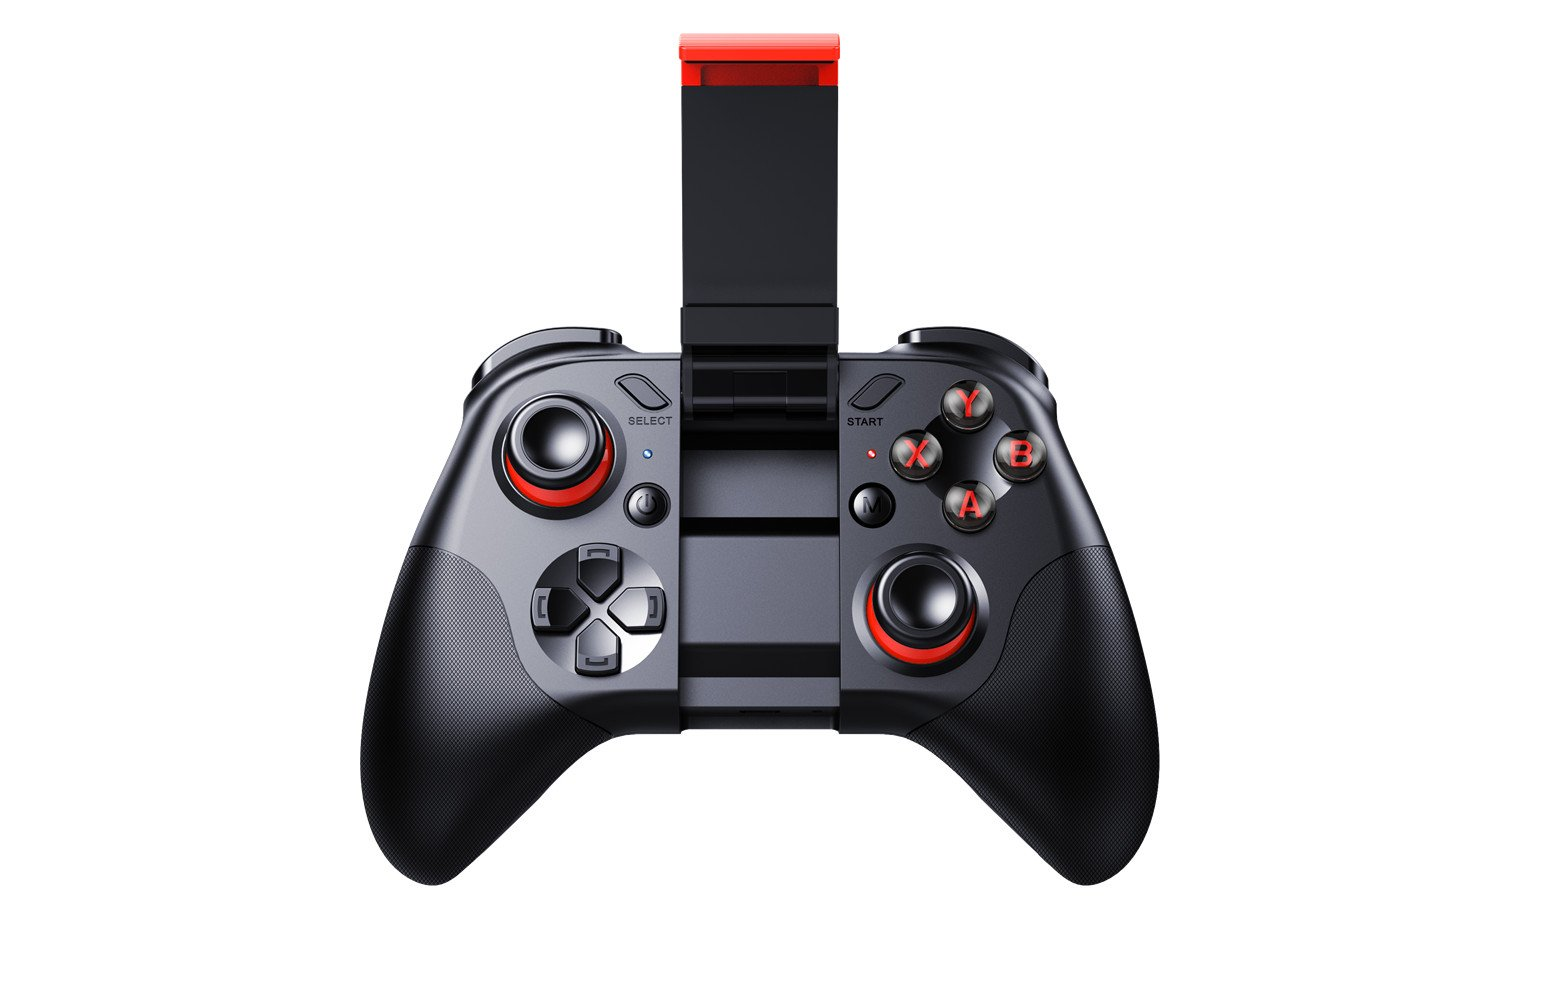 Loong Wireless Controller with Bluetooth Wireless Gaming Controller Gamepad Support iOS Android OS VR, 054